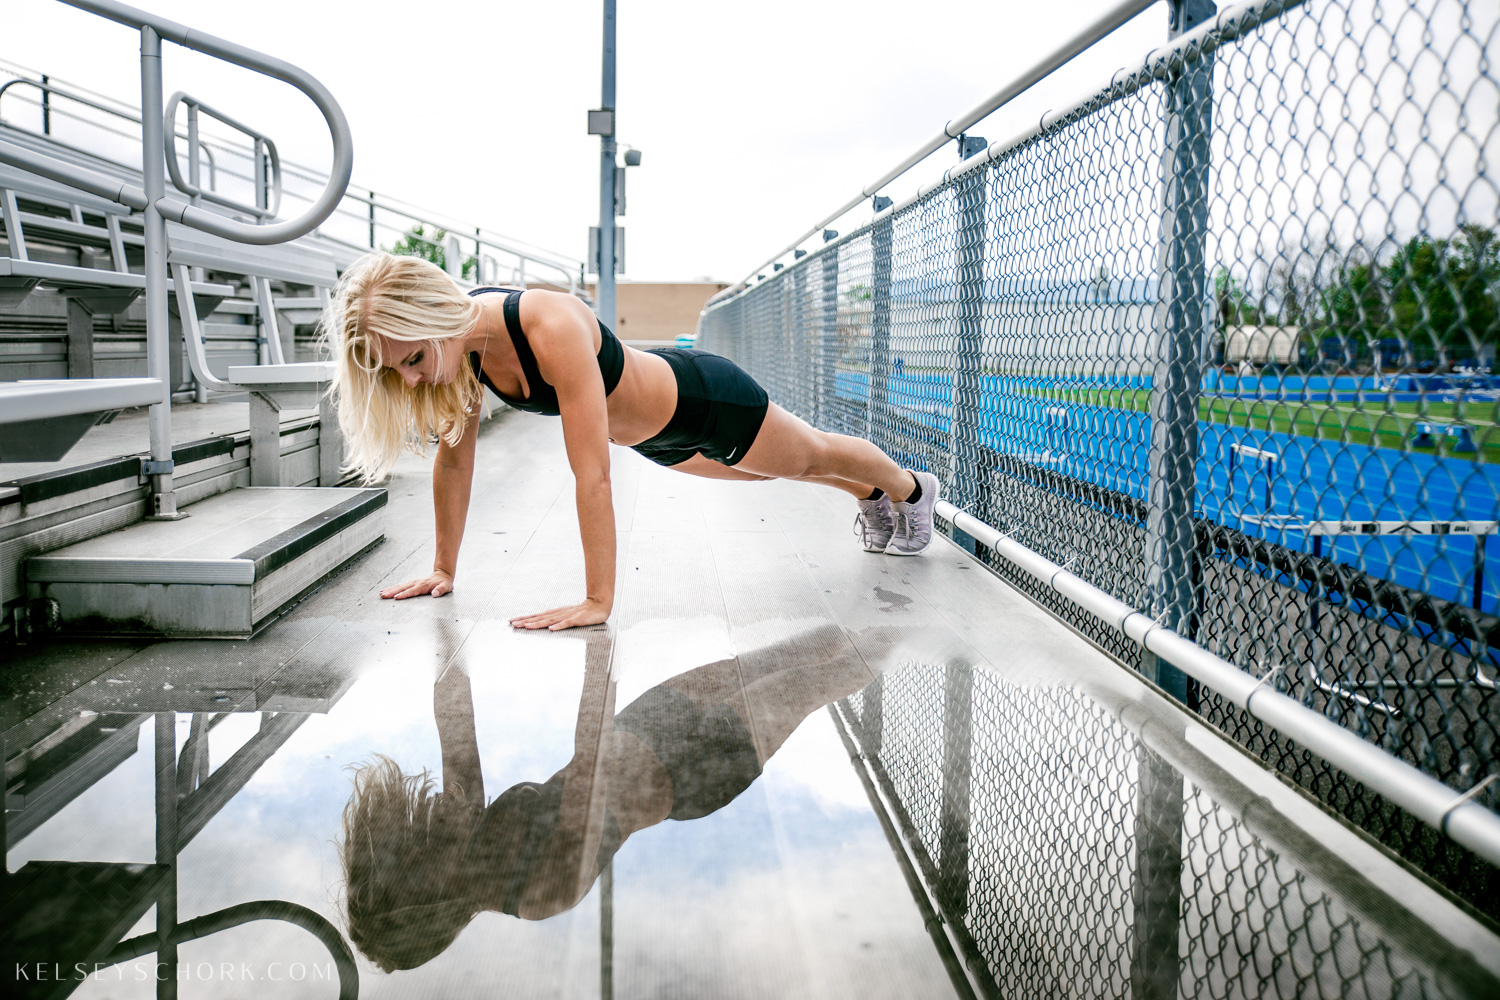 Kelsey drove into Buffalo, NY from Rochester for her summer fitness photoshoot with fitness photographer Kelsey Schork.